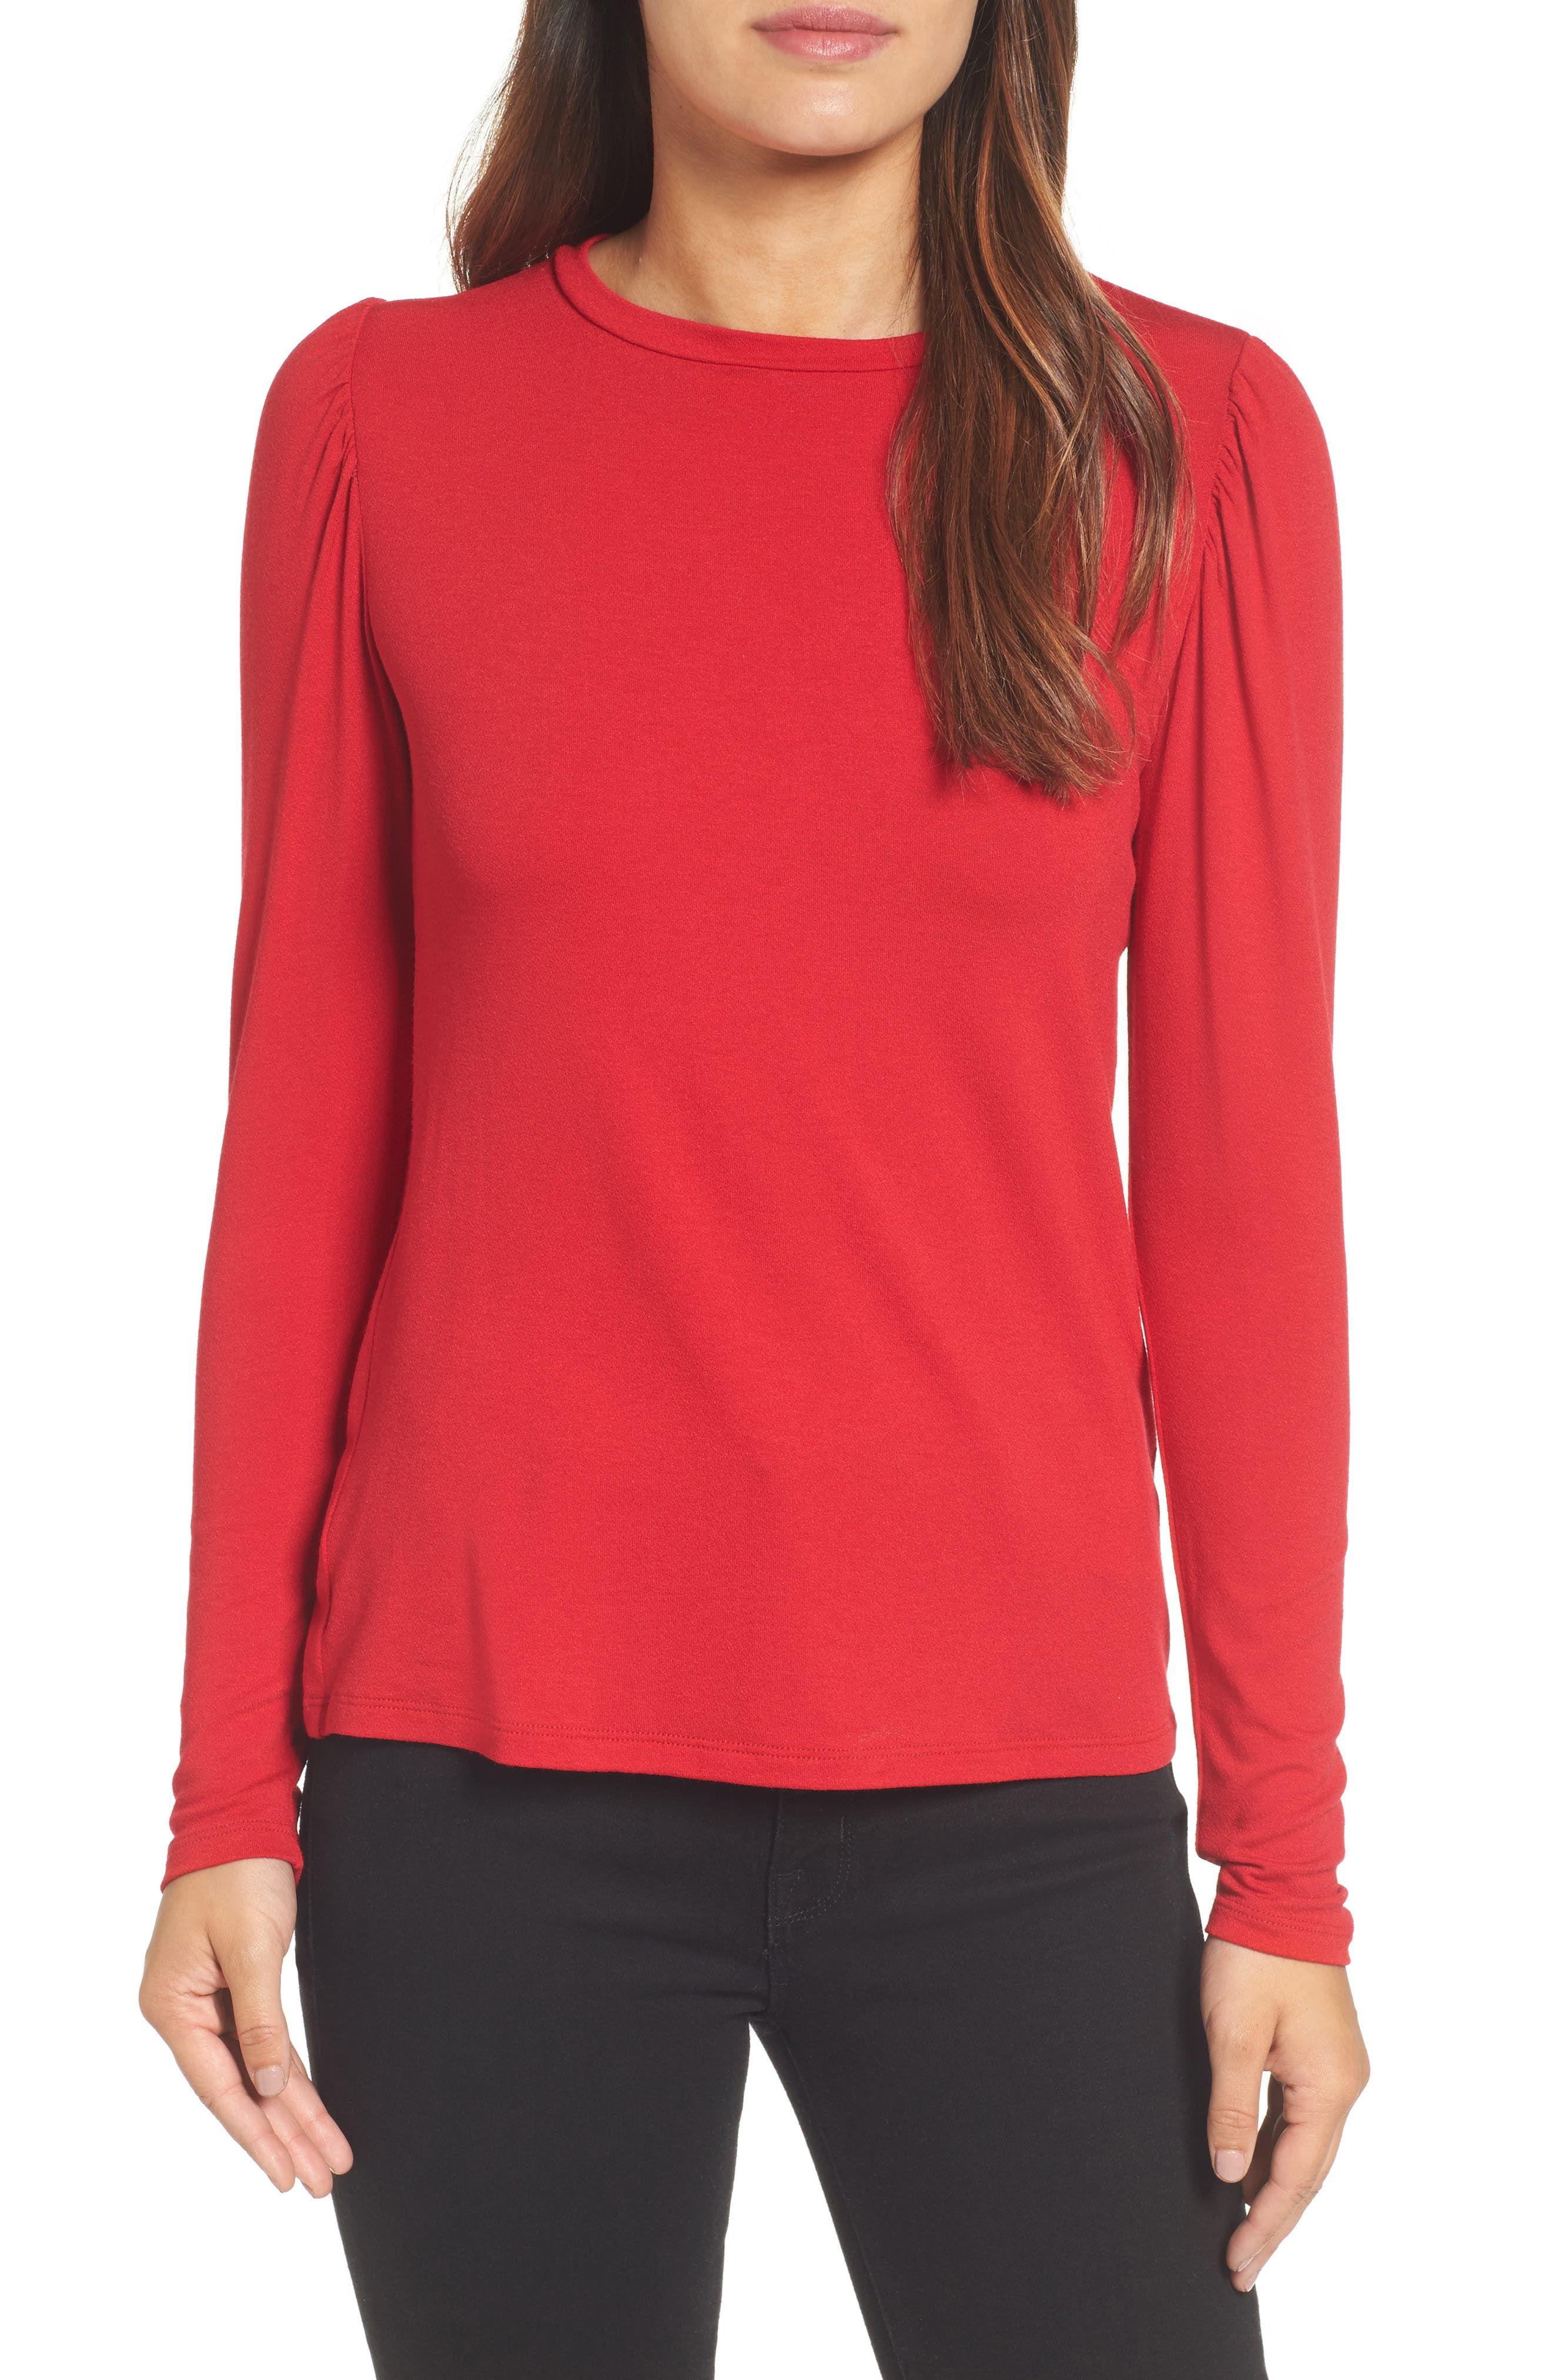 Bishop Knit Top,                         Main,                         color, Red Chili